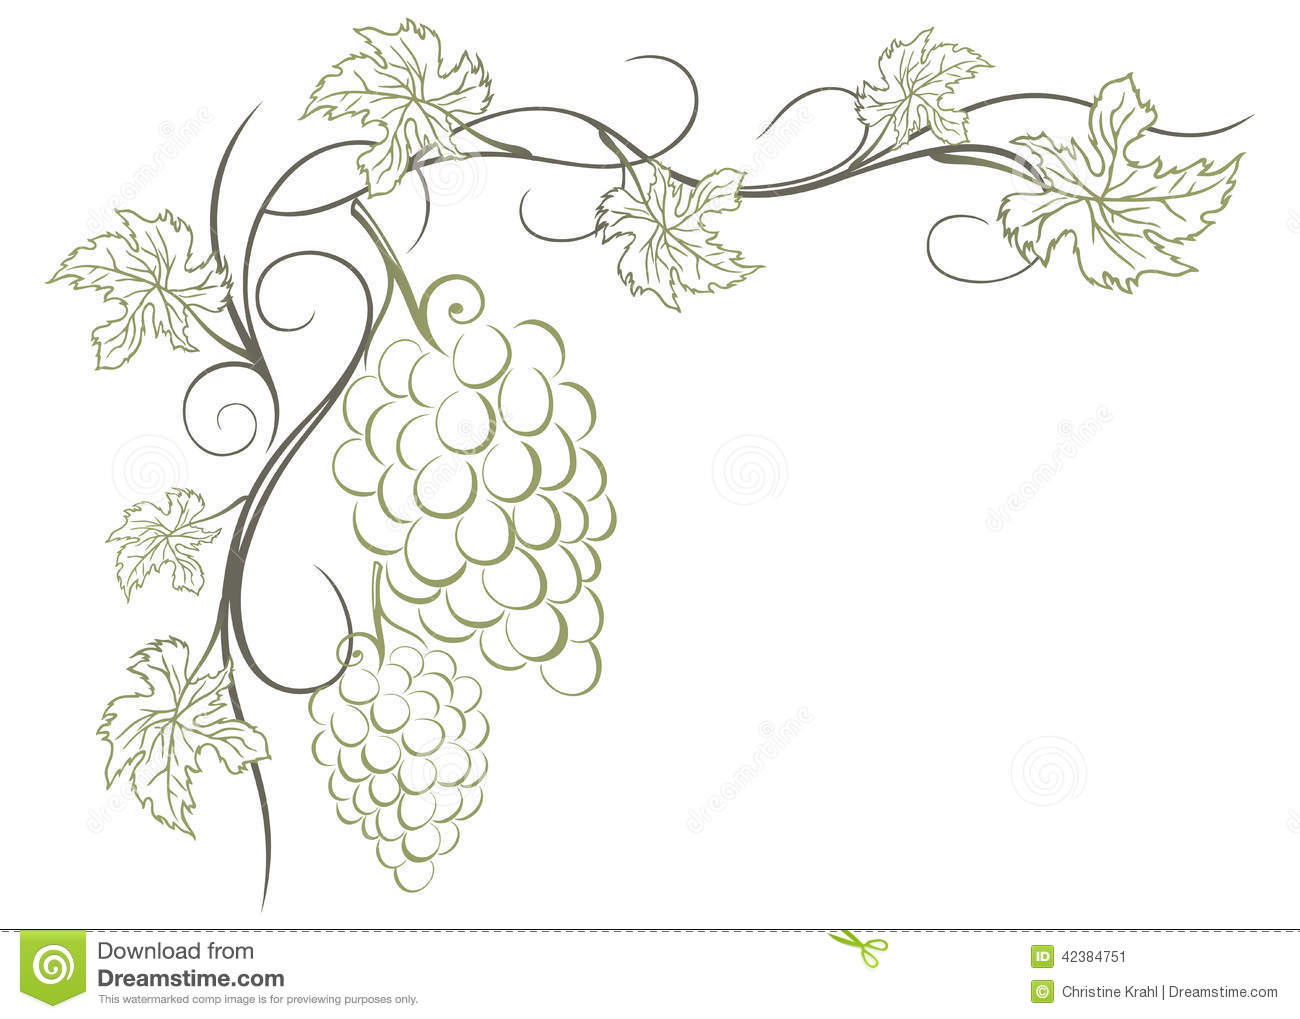 Grape Vines Stock Vector - Image: 42384751